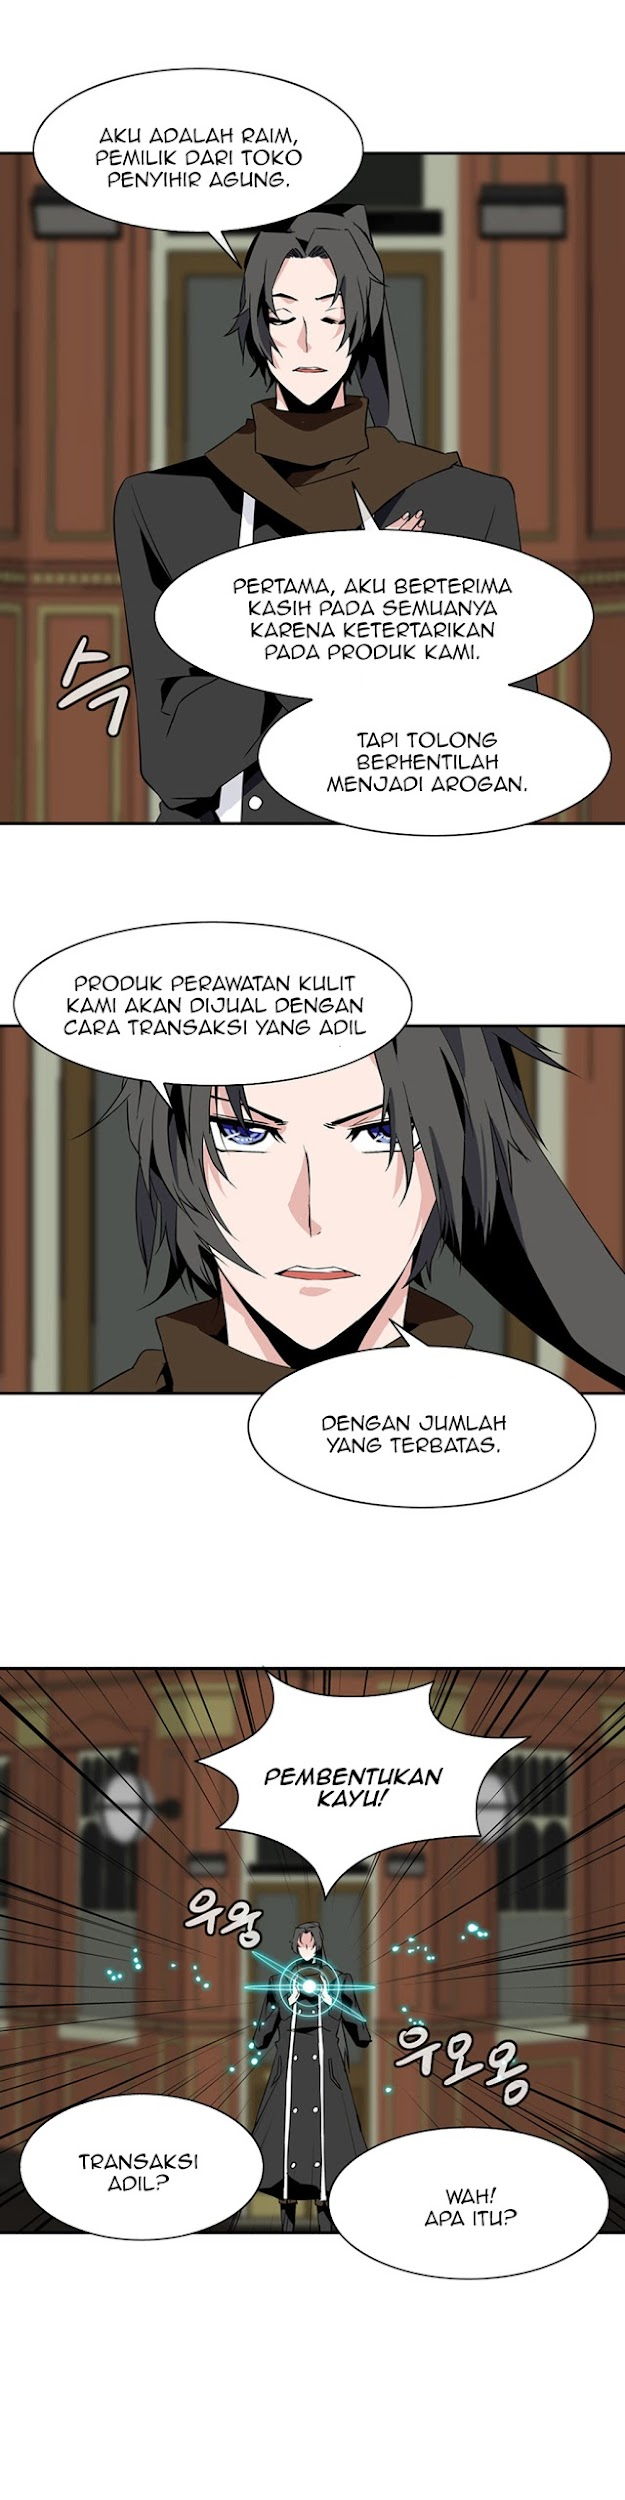 Dilarang COPAS - situs resmi www.mangacanblog.com - Komik wizardly tower 030 - chapter 30 31 Indonesia wizardly tower 030 - chapter 30 Terbaru 16|Baca Manga Komik Indonesia|Mangacan